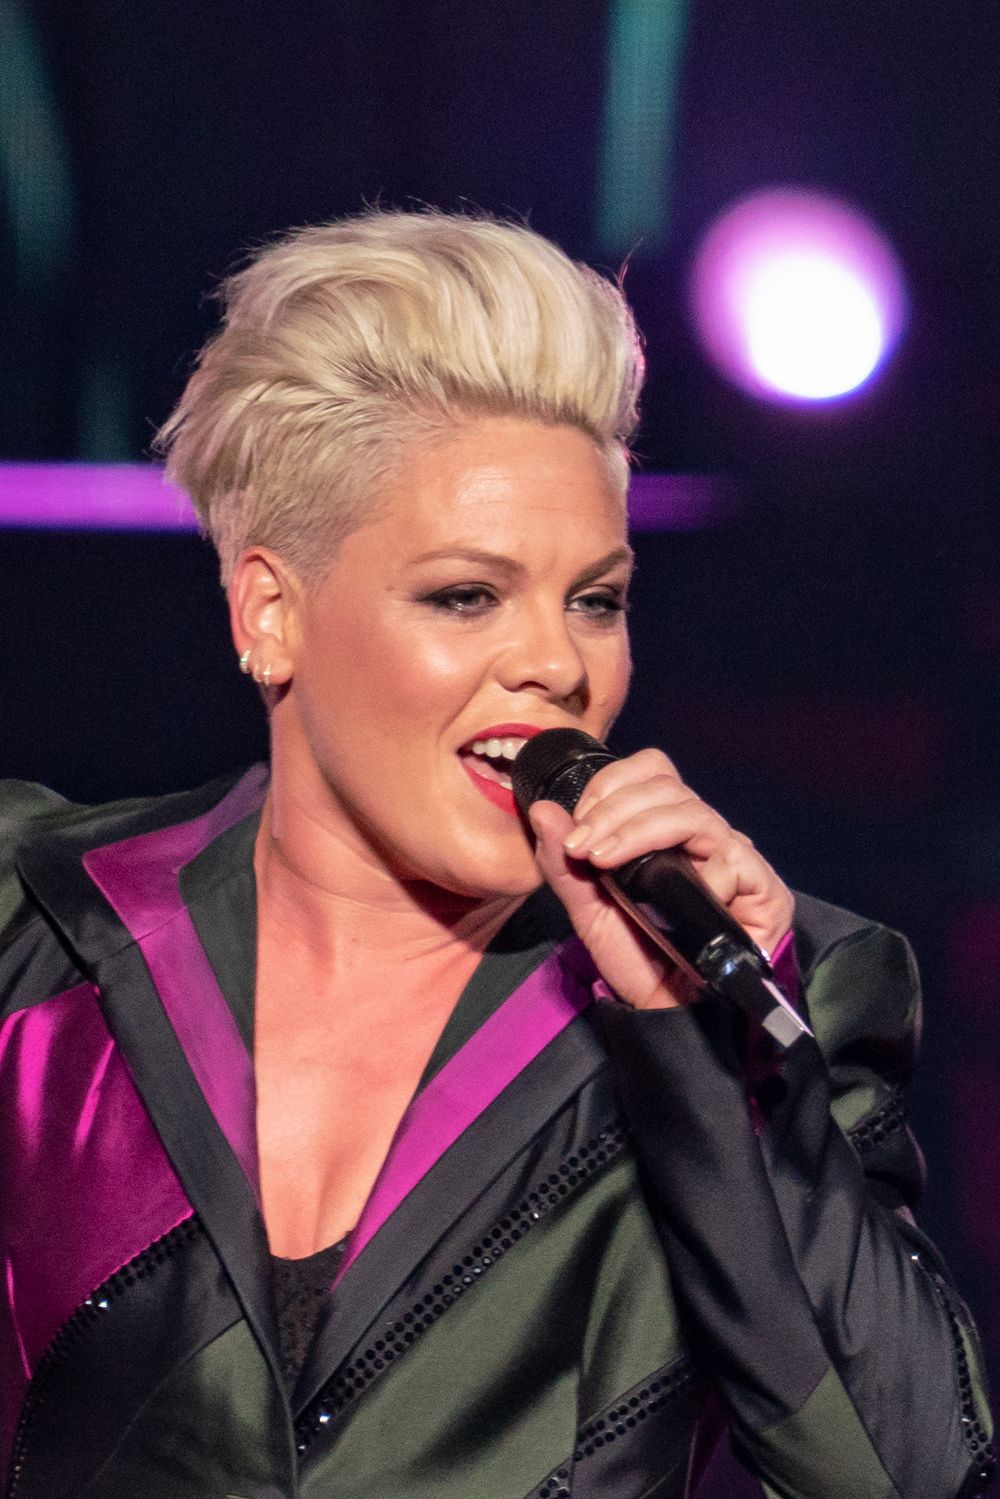 Are You A True P Nk Fan Pink Singer Hairstyles Pink Singer Pink Short Hair